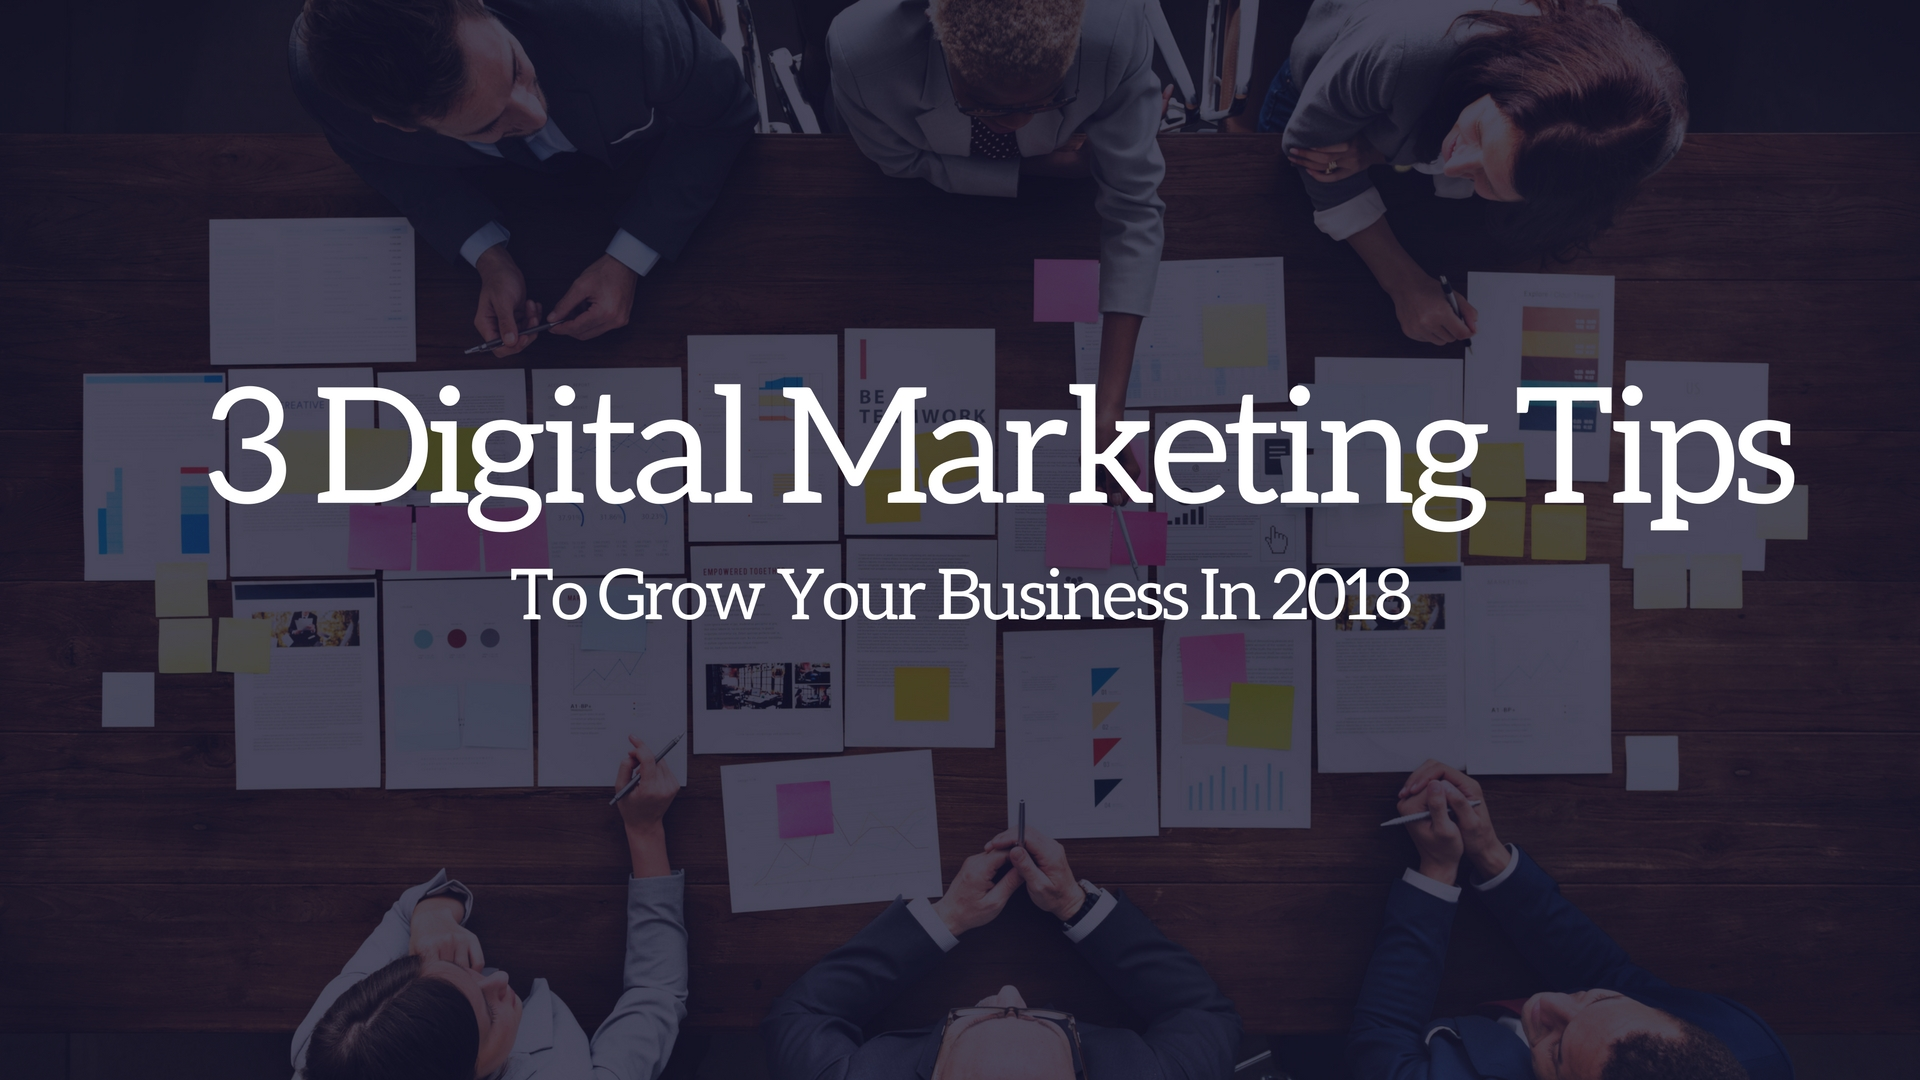 3 Digital Marketing Tips to Grow Your Business in 2018